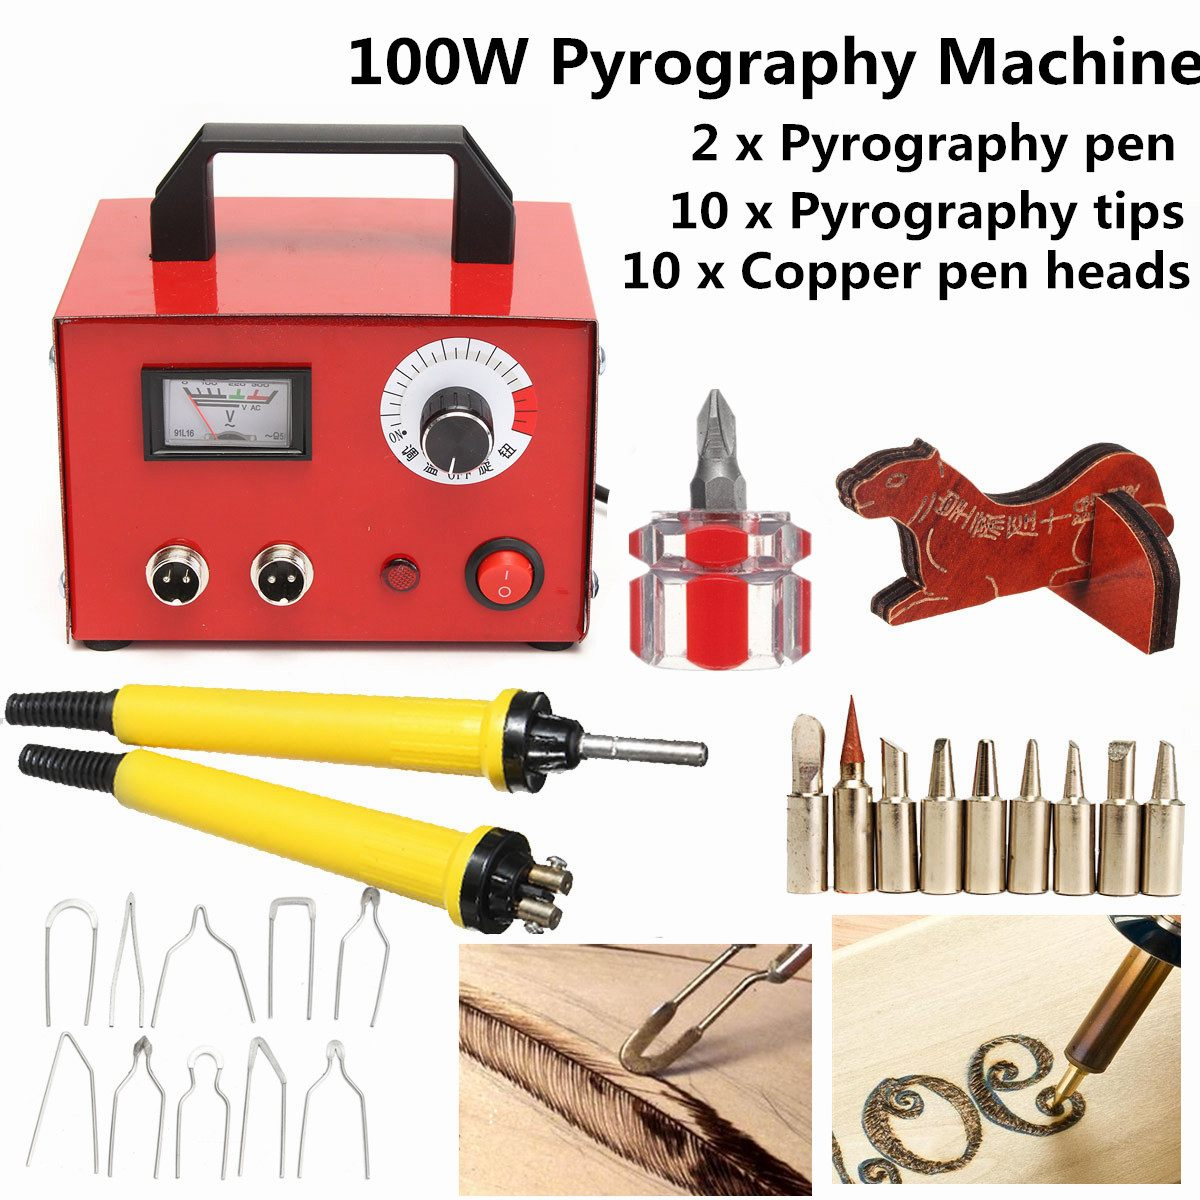 100W Digital Multifunction Pyrography Machine Gourd Wood With Pyrography Pen Wood Burning Pen Craft Tool Kit Sets AC 220V/110V